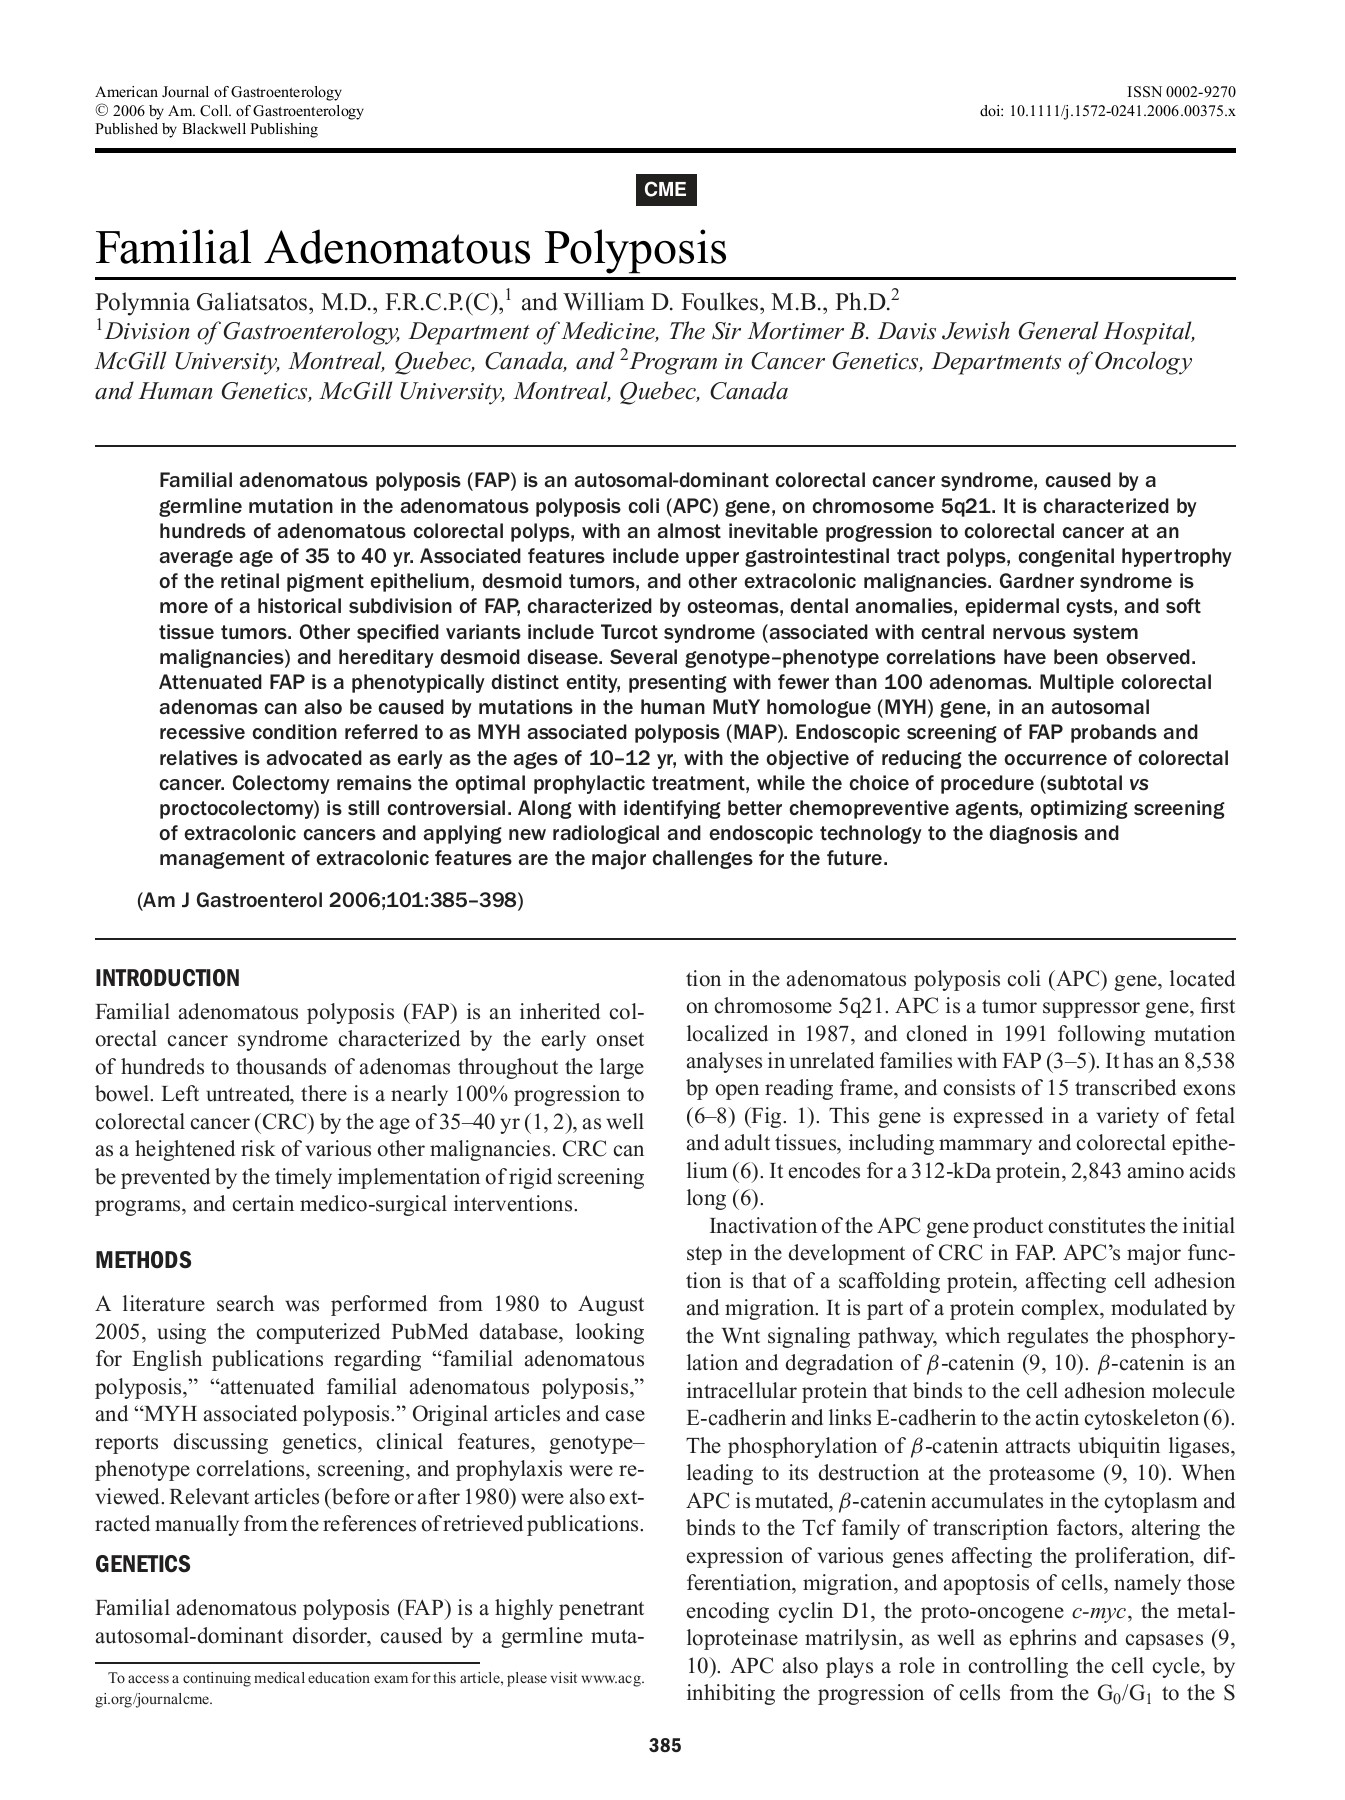 CME Familial Adenomatous Polyposis - fapinfo com Pages 1 - 14 - Text